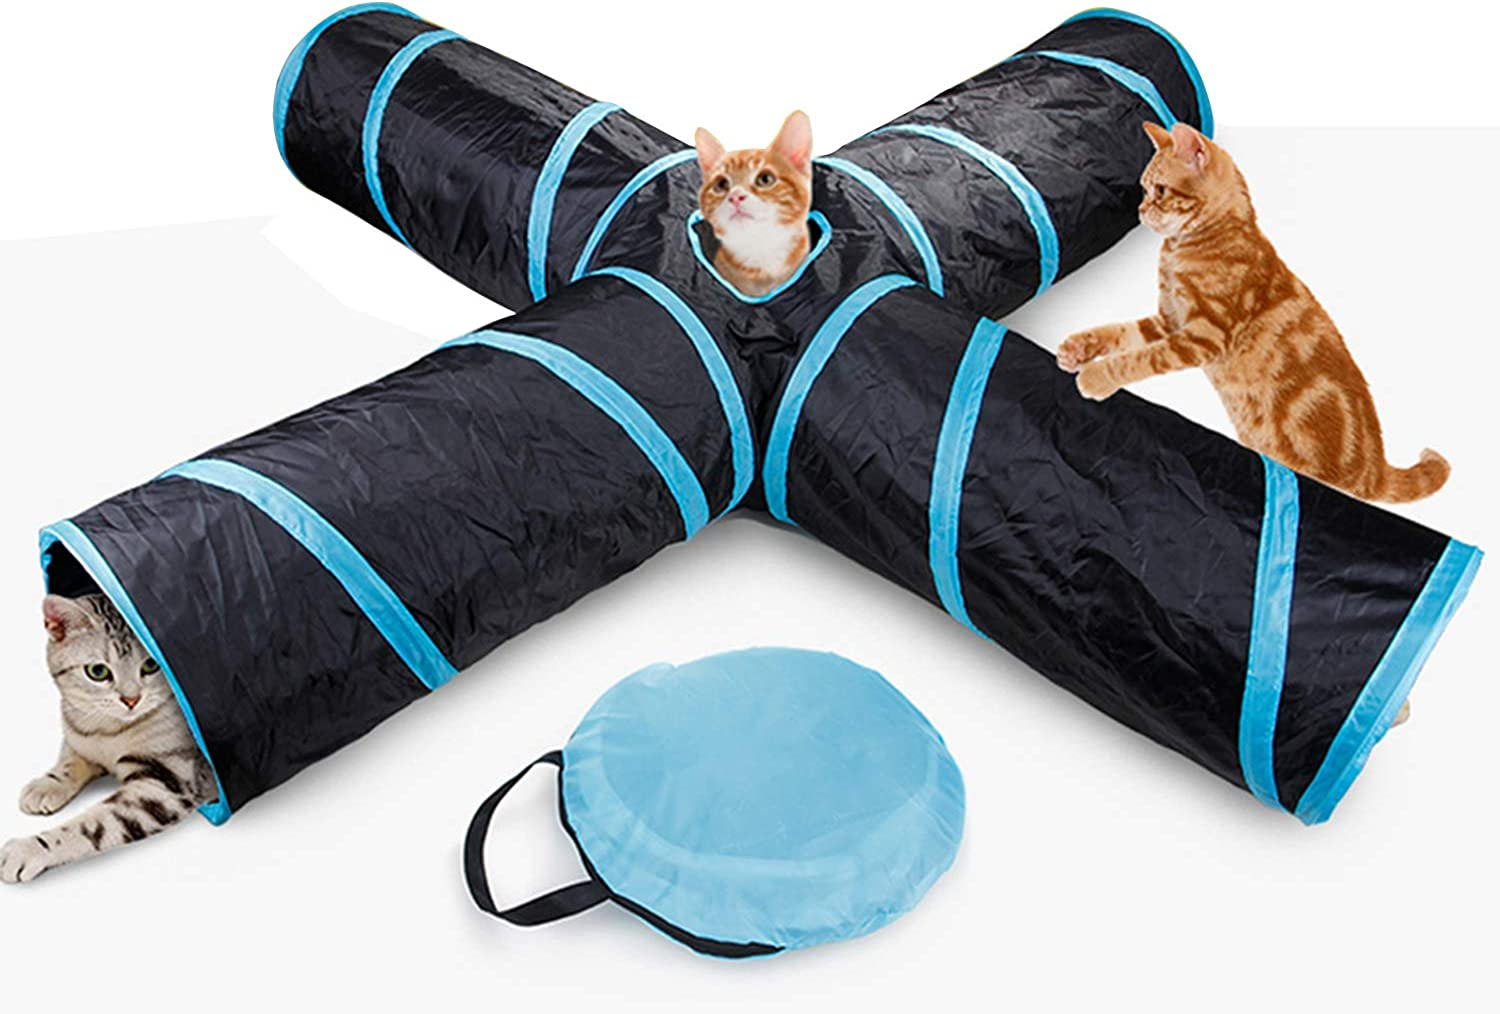 Foldable Cat Tannel Portable 4 Way Play Toy Dog Tube for Kitten Fat Cat with Hanging Ball Convenient for Storage, Black bluee